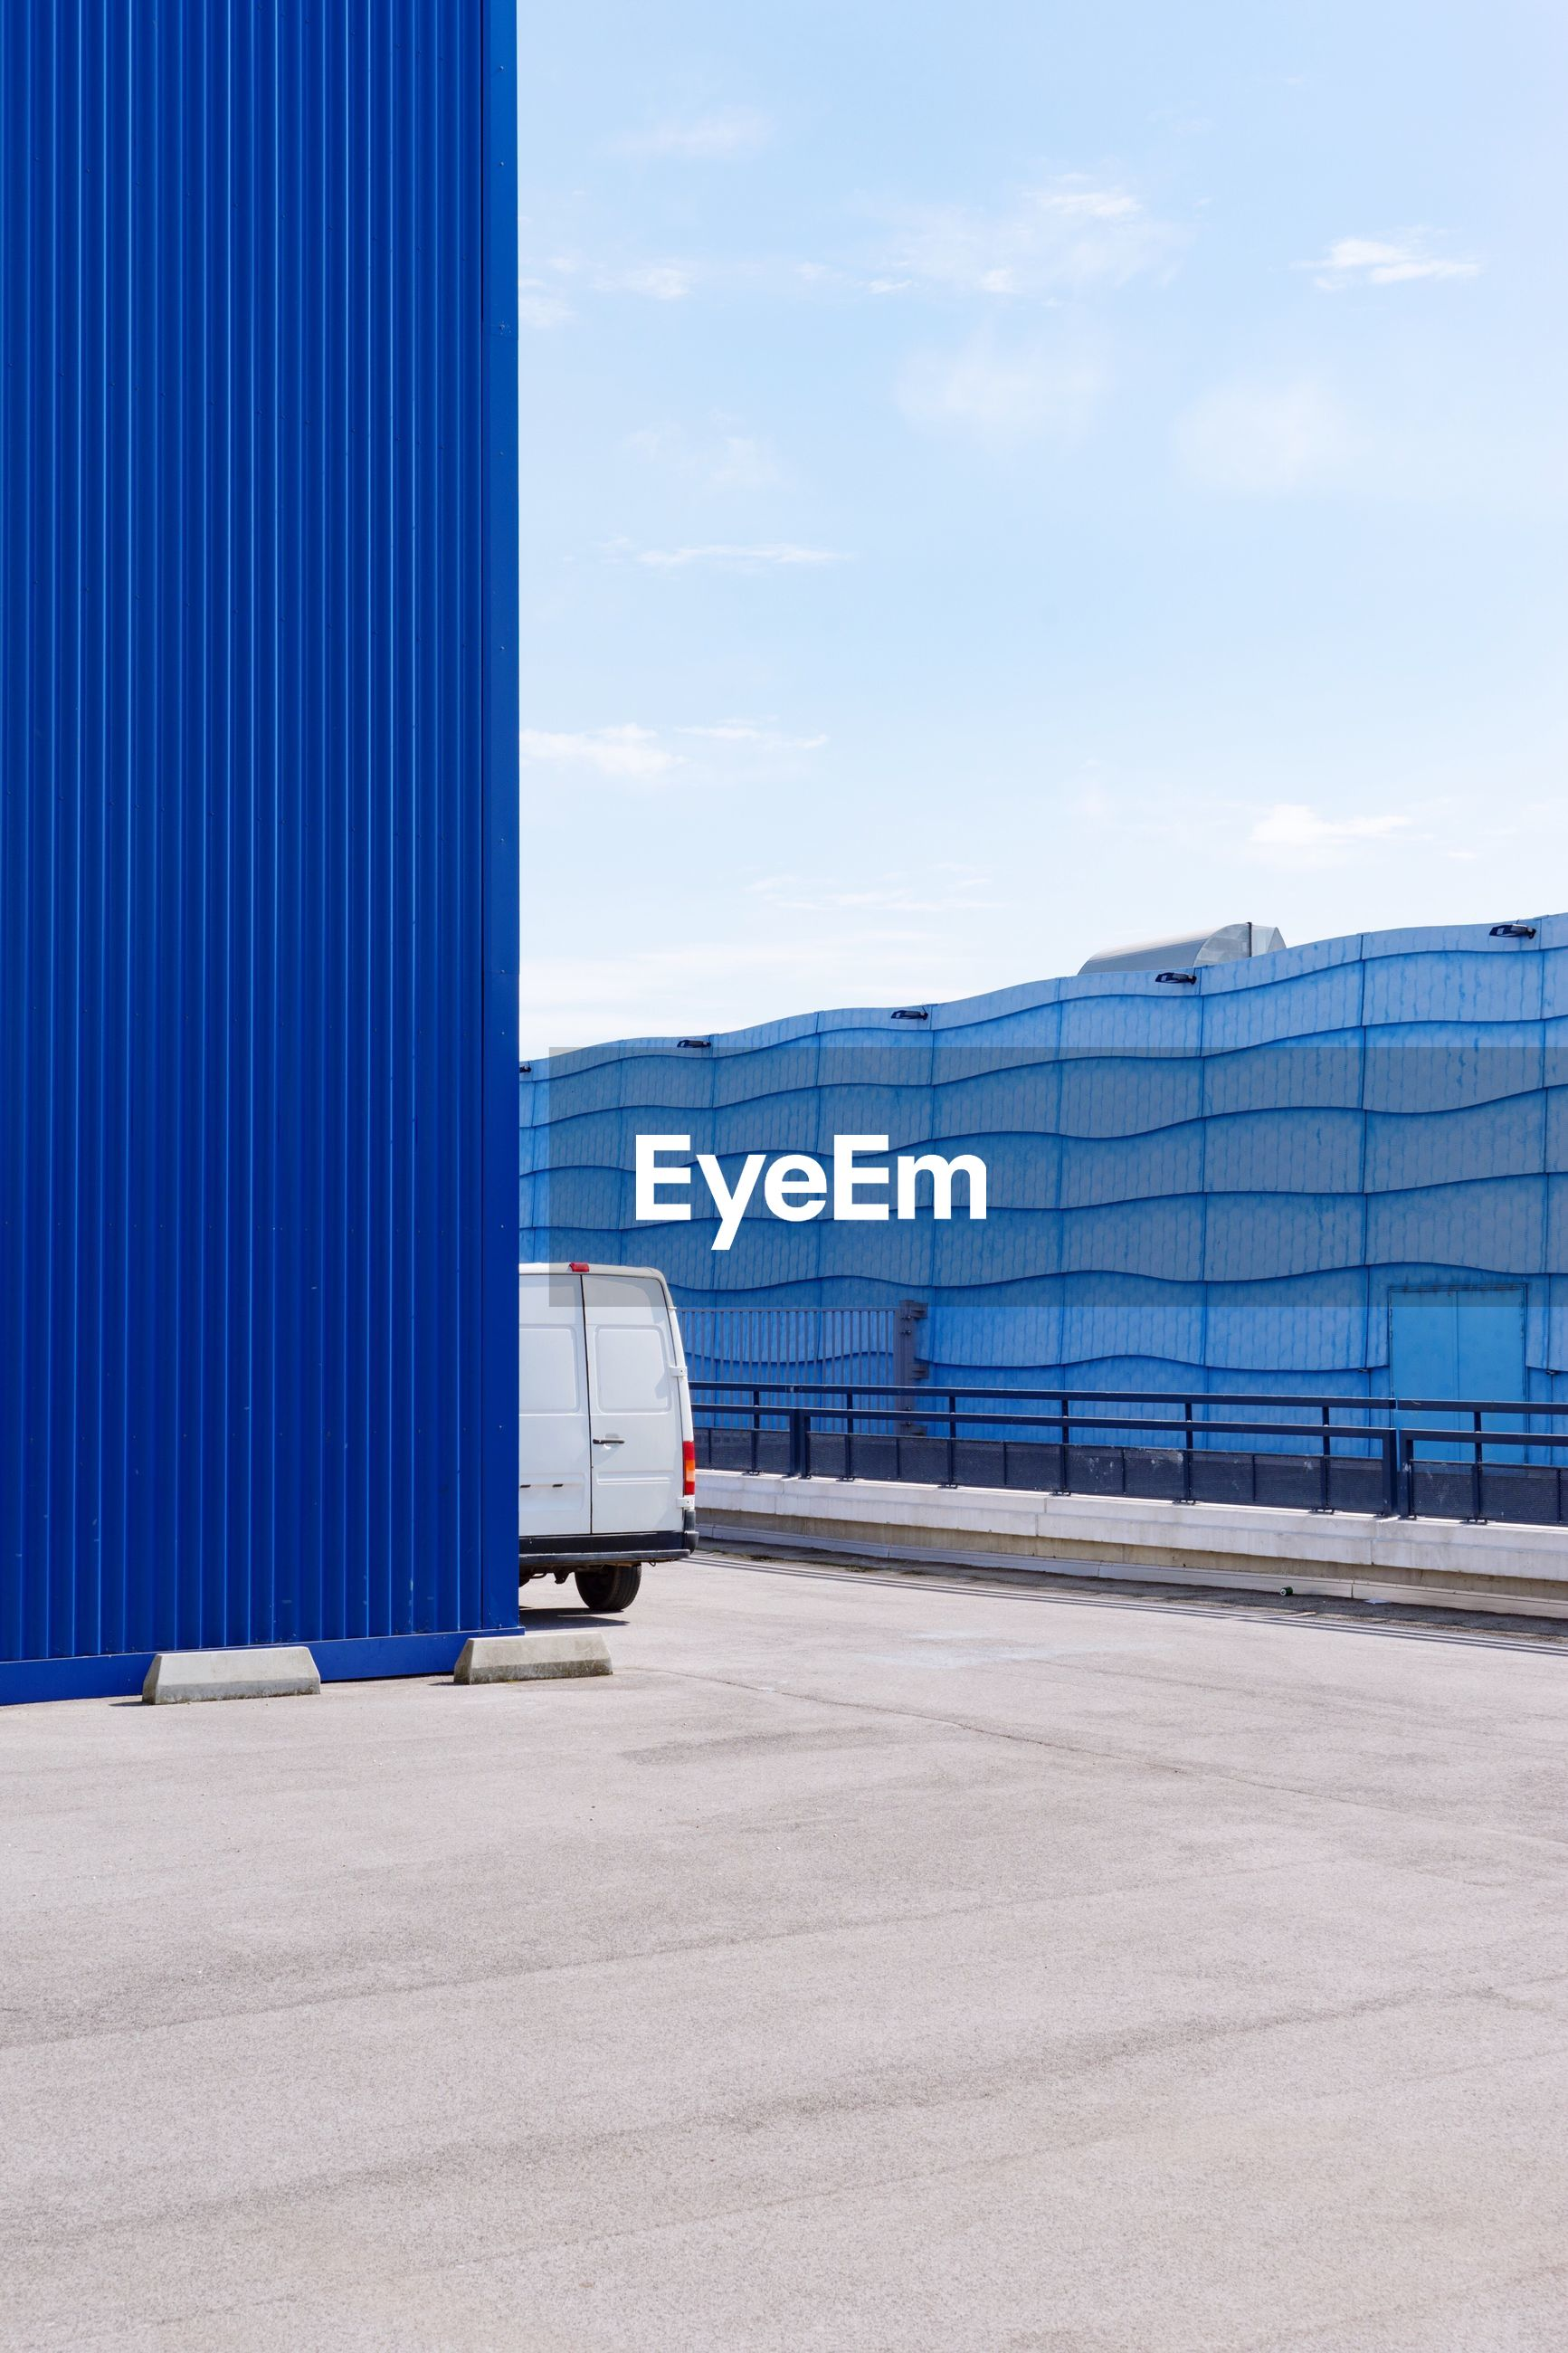 freight transportation, transportation, shipping, cargo container, container, day, no people, blue, industry, warehouse, sky, outdoors